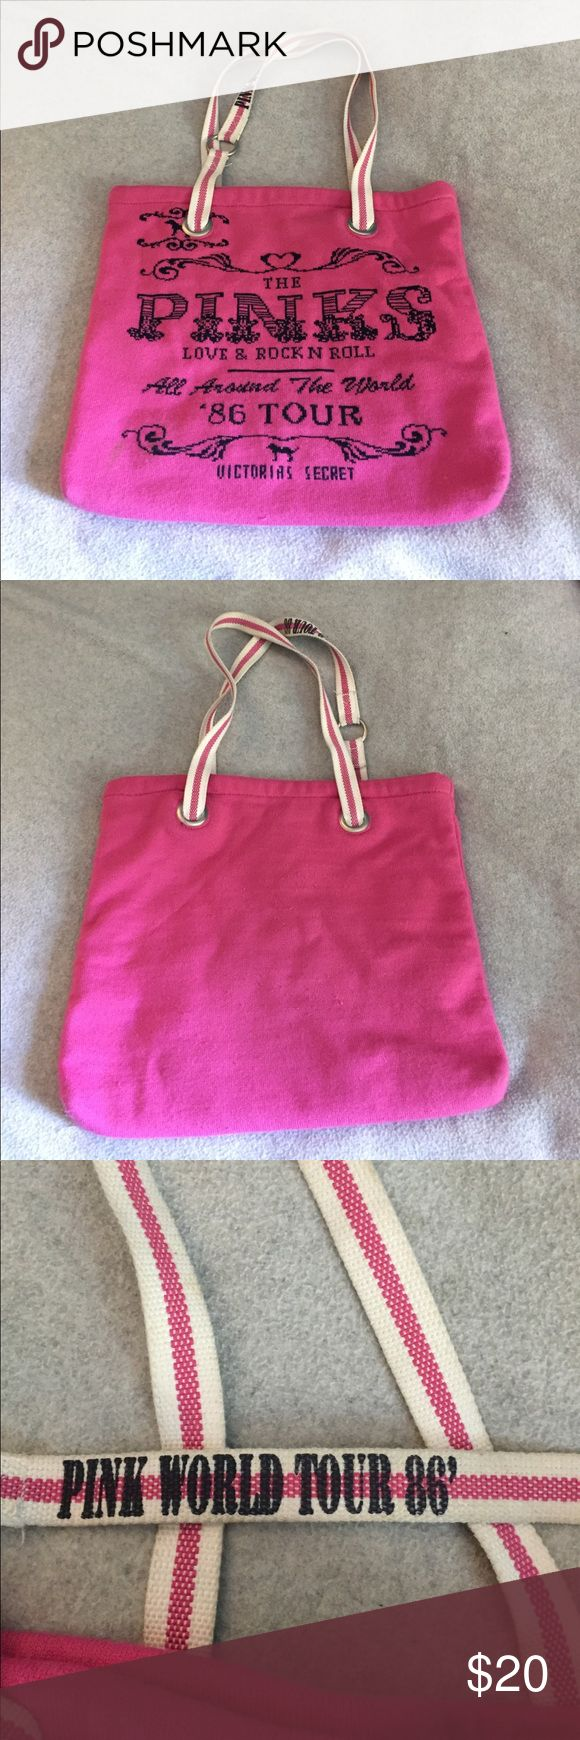 PINK '86 Tour Tote Bag 100% Acrylic material, in great condition though the material has some pulls PINK Victoria's Secret Bags